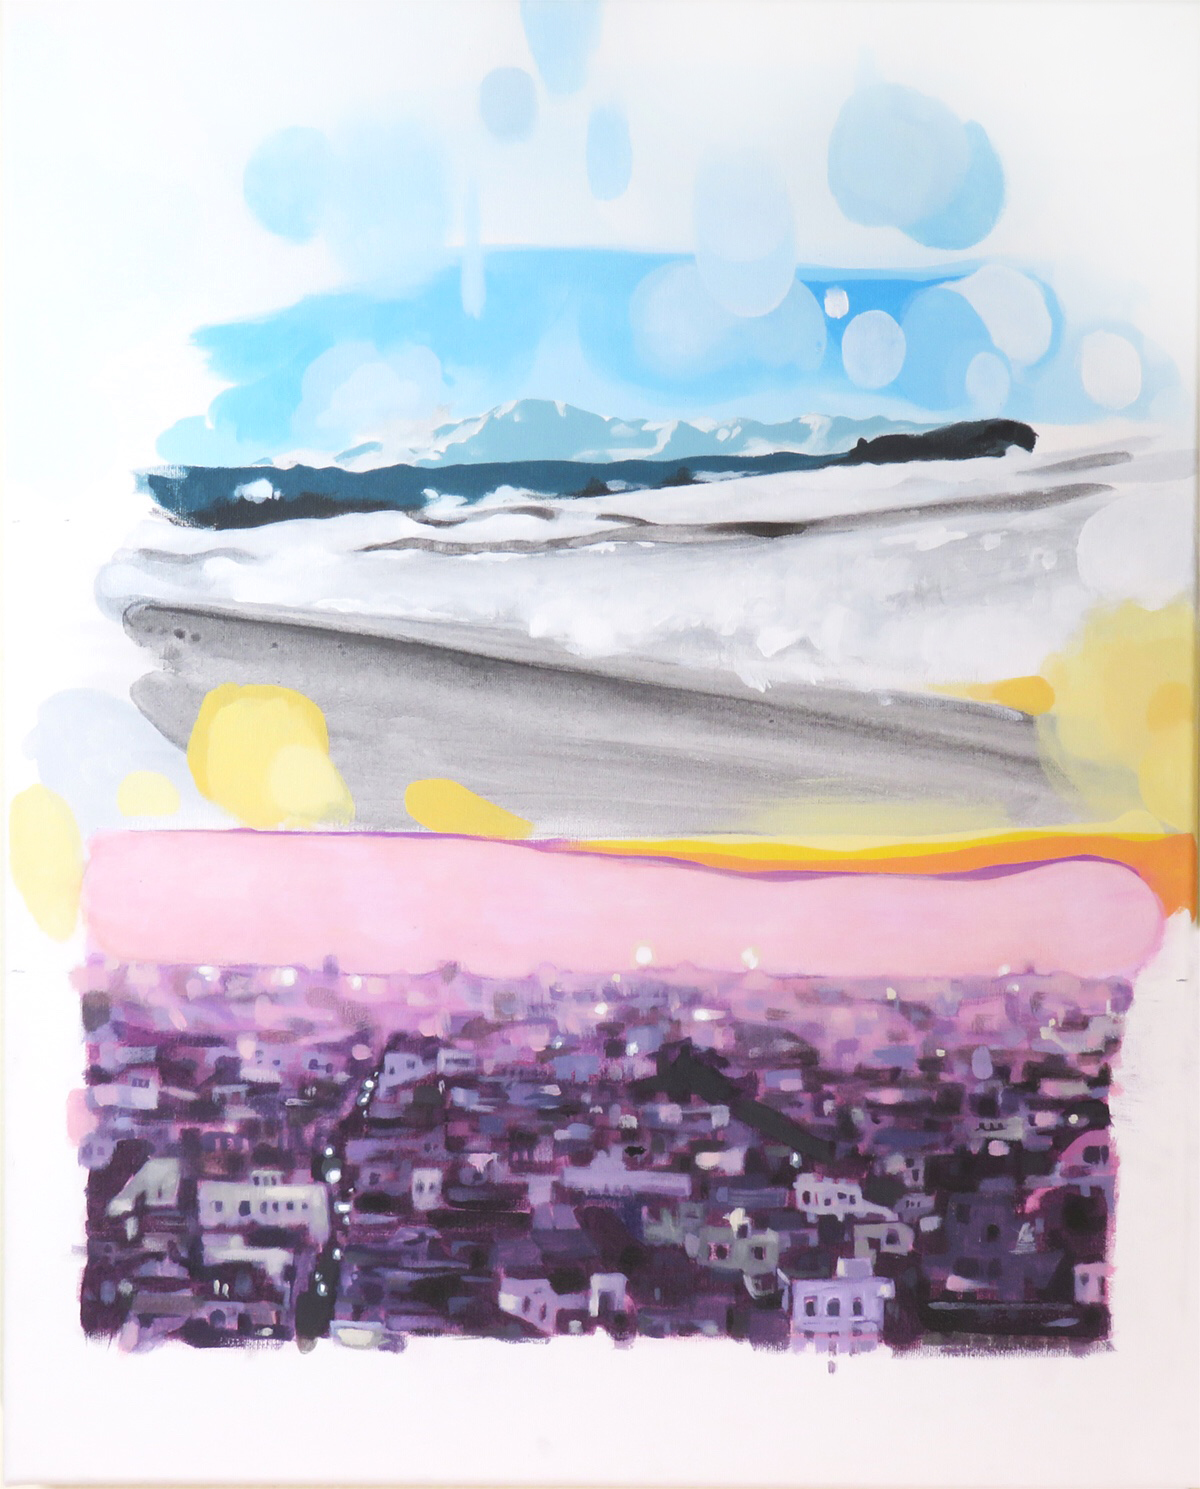 """Pikes peak from I-25 / Jodhpur from a hill - Acrylic painting on canvas - 16""""x20"""""""